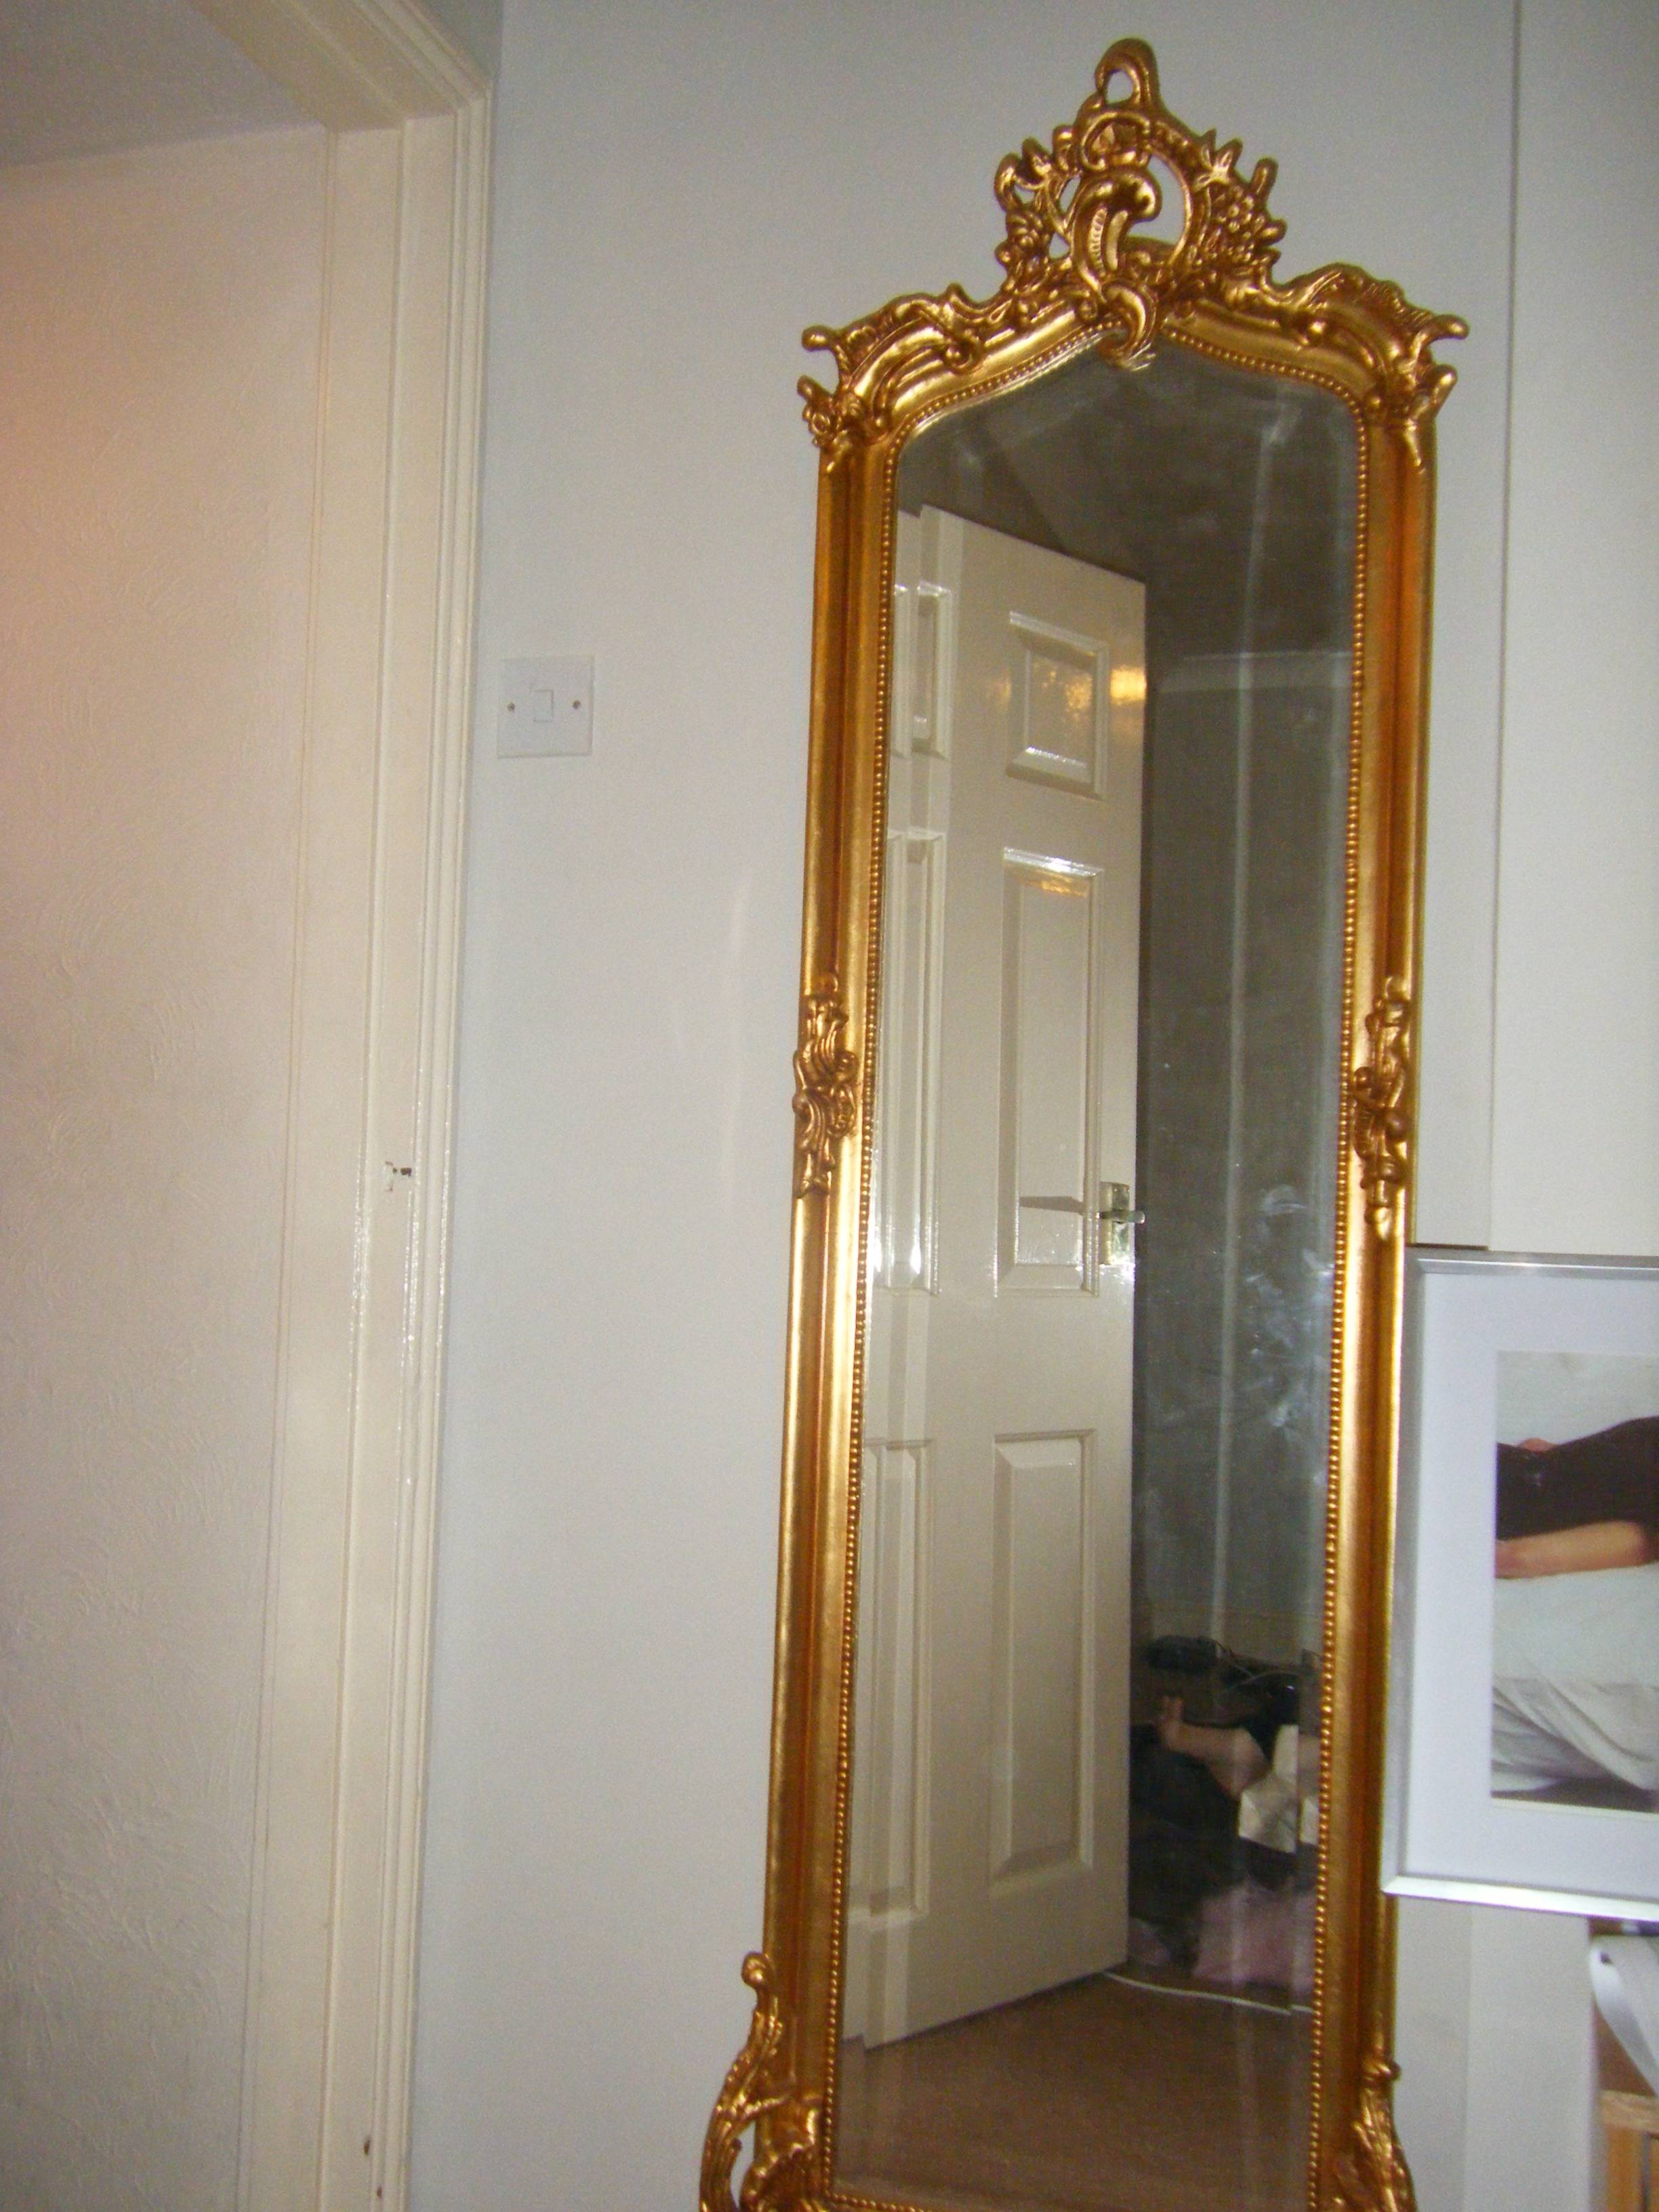 Vintage Full Length Mirrors For Sale | Vanity Decoration with Vintage Full Length Mirrors (Image 23 of 25)